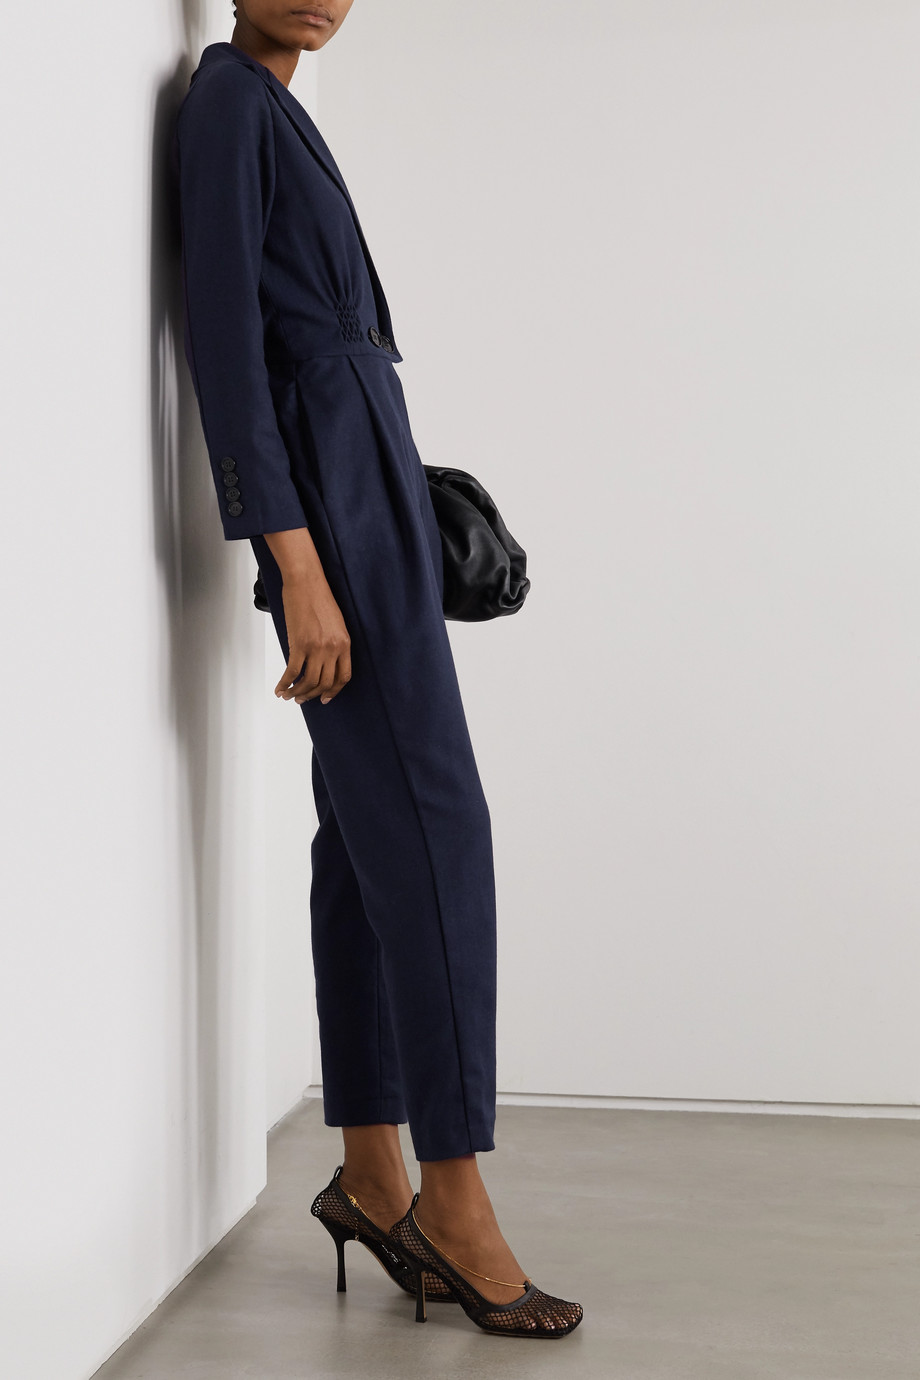 YOOX NET-A-PORTER For The Prince's Foundation Doppelreihiger Jumpsuit aus Kaschmir mit Fischgratmuster